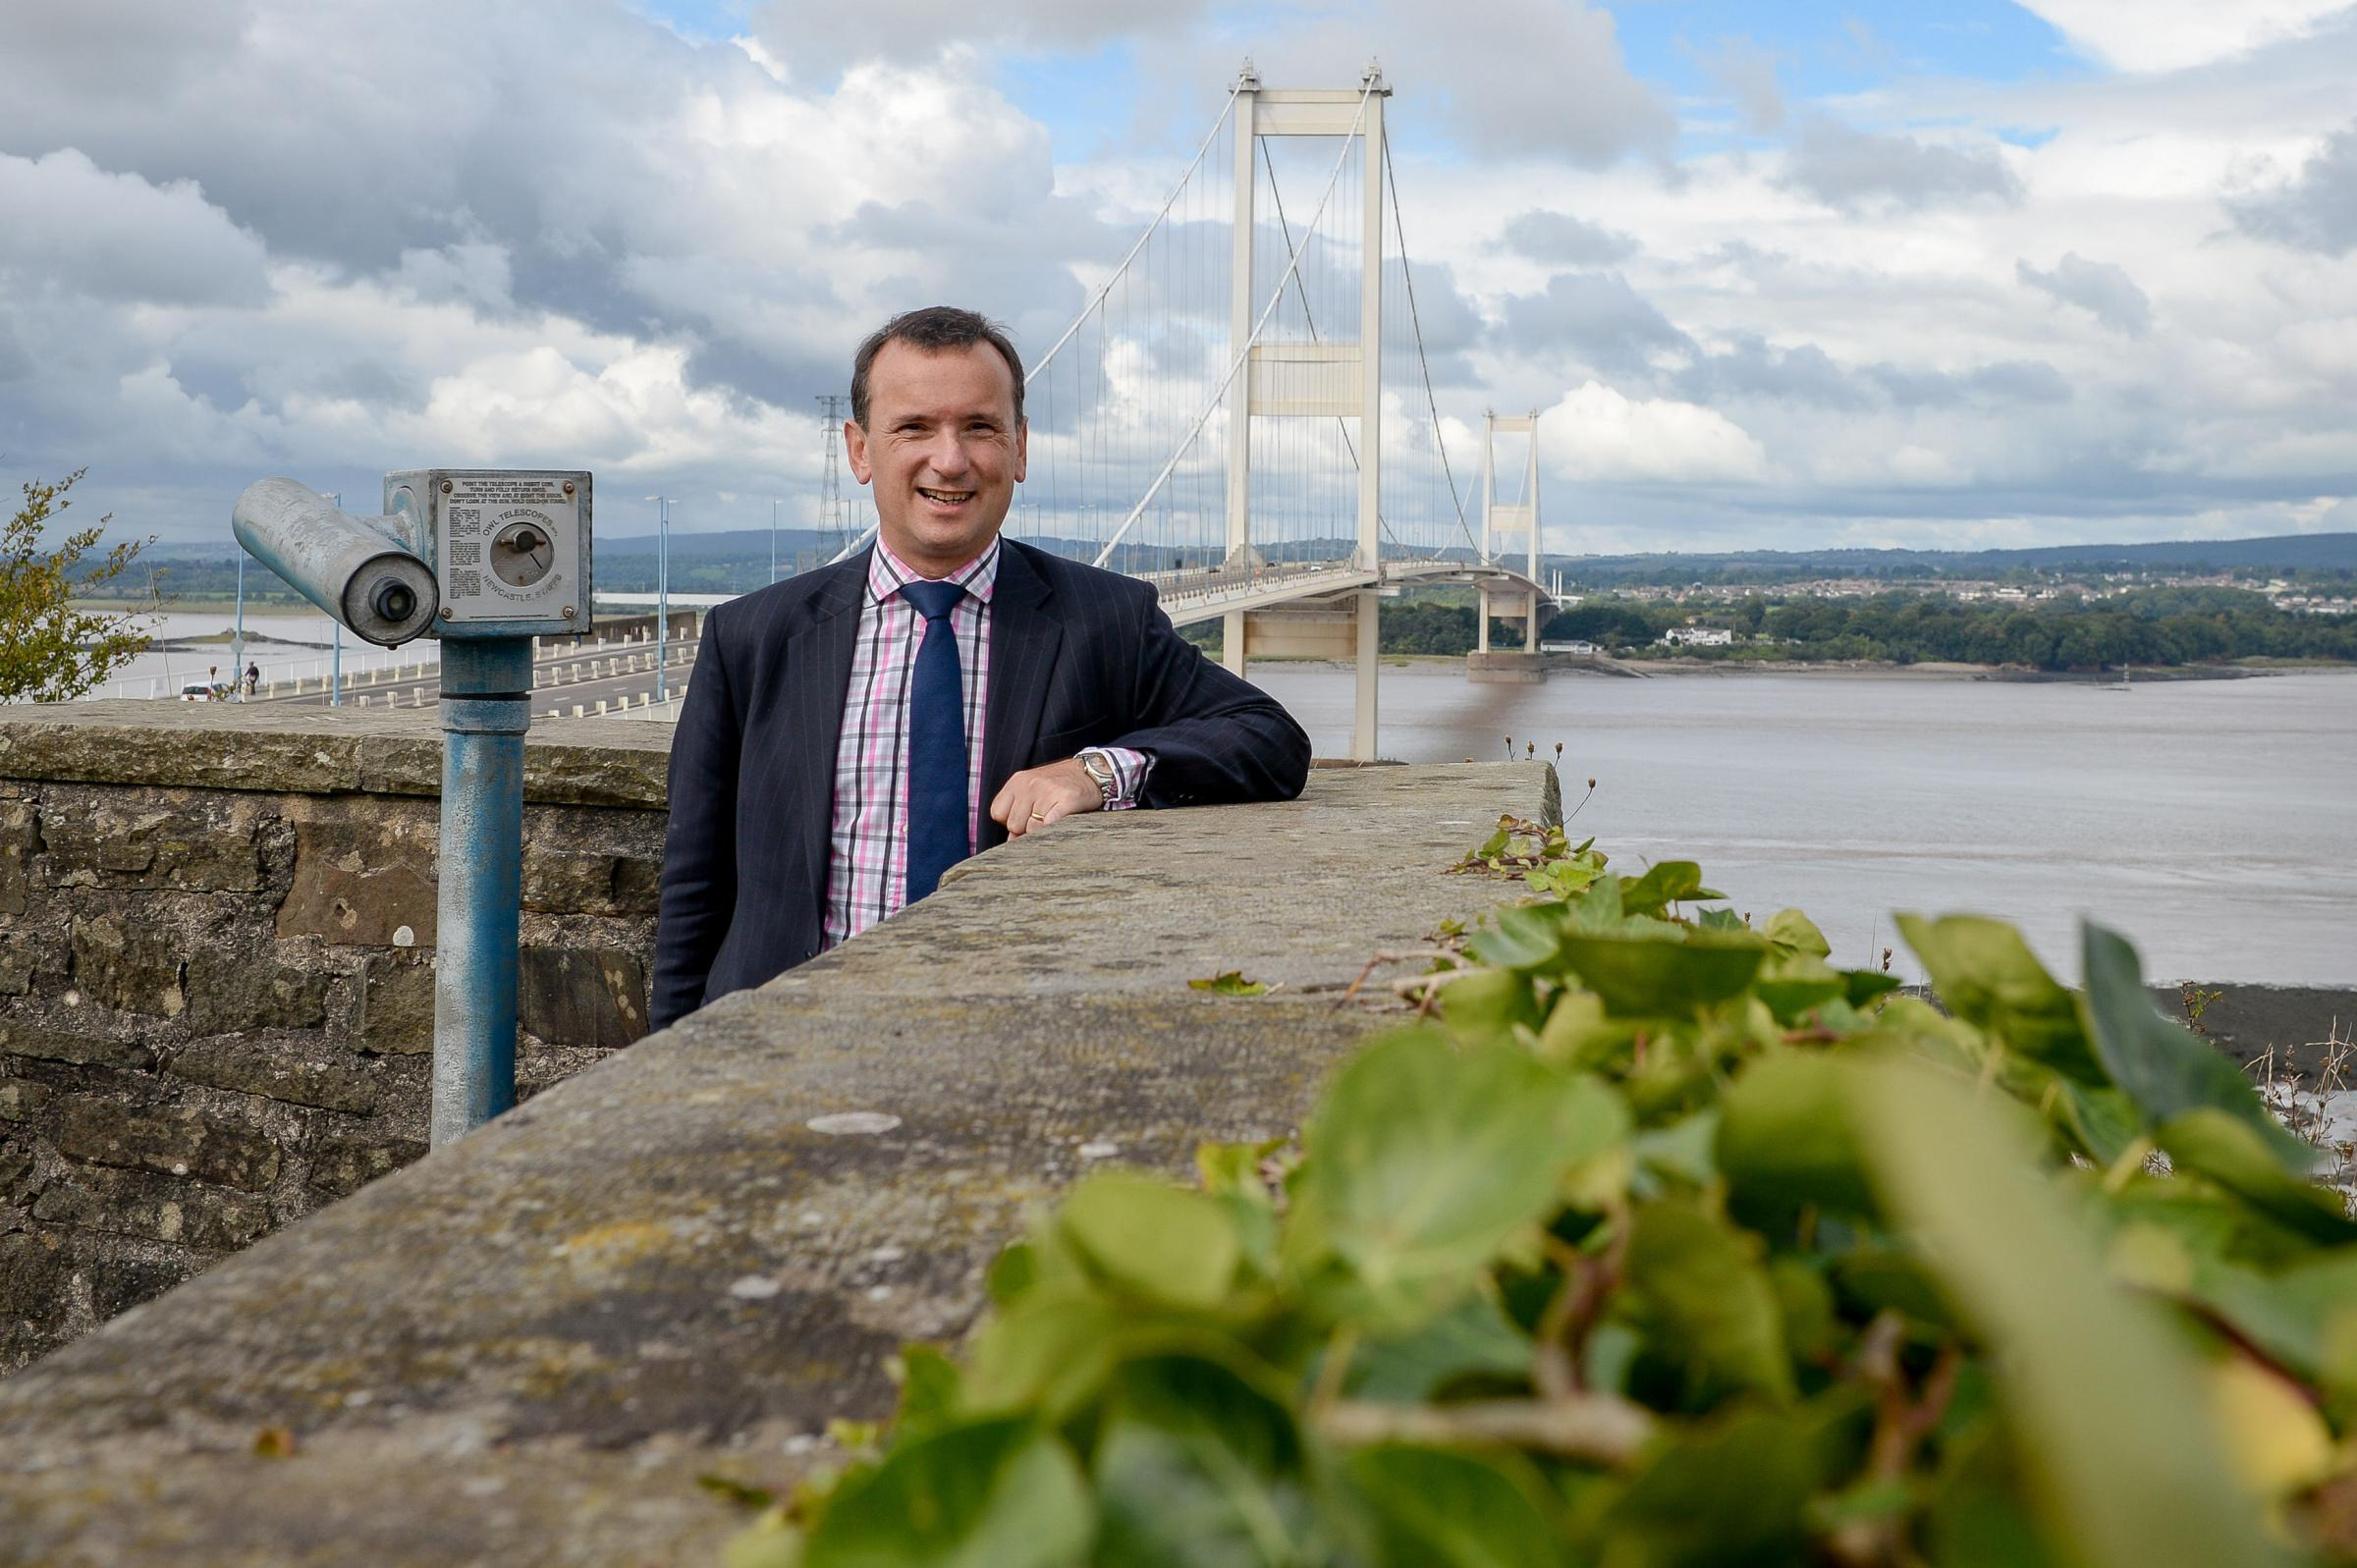 Secretary of State for Wales announced the abolition of the Severn tolls earlier this year. Picture: Ben Birchall/PA Wire